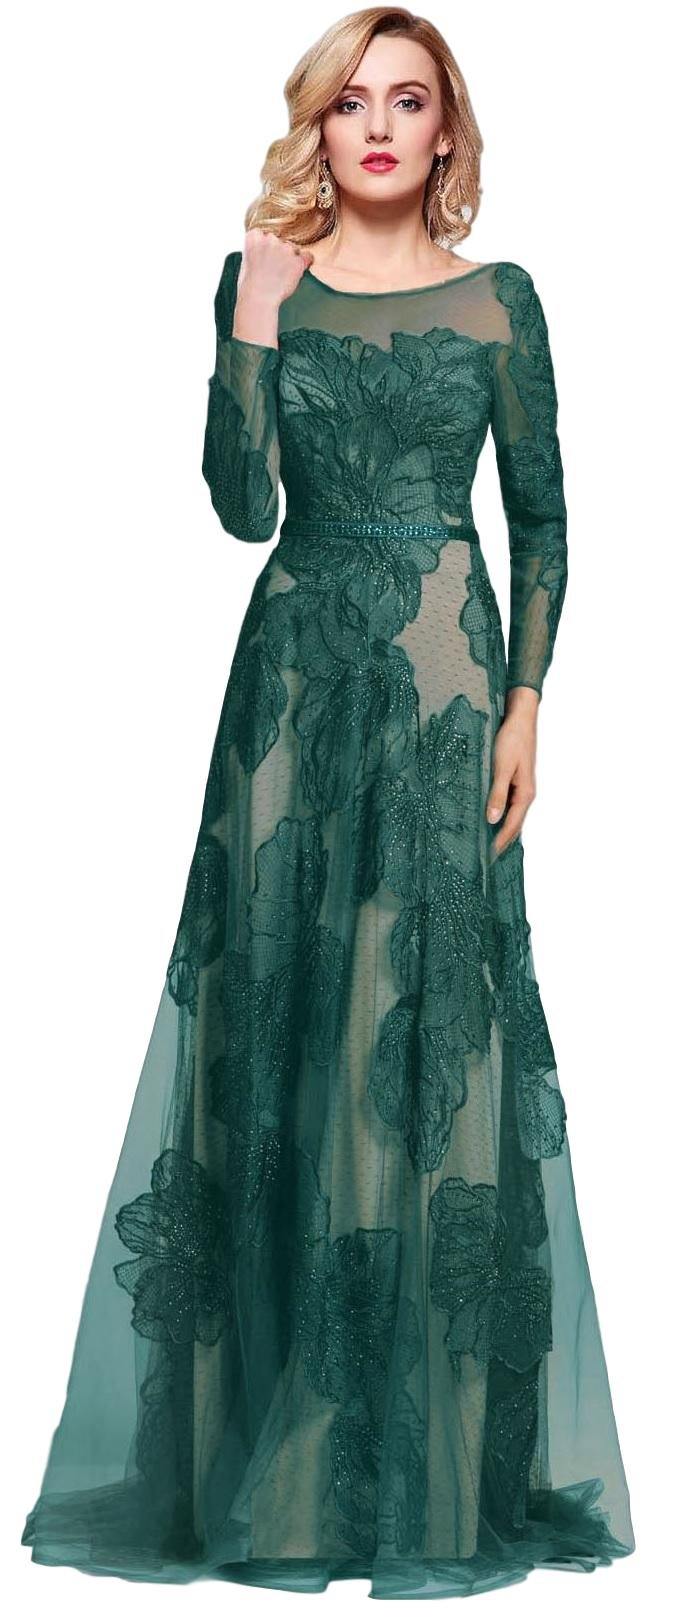 Meier Women's Long Sleeve Illusion Back Embroidery Lace Evening Dress Green Size 10